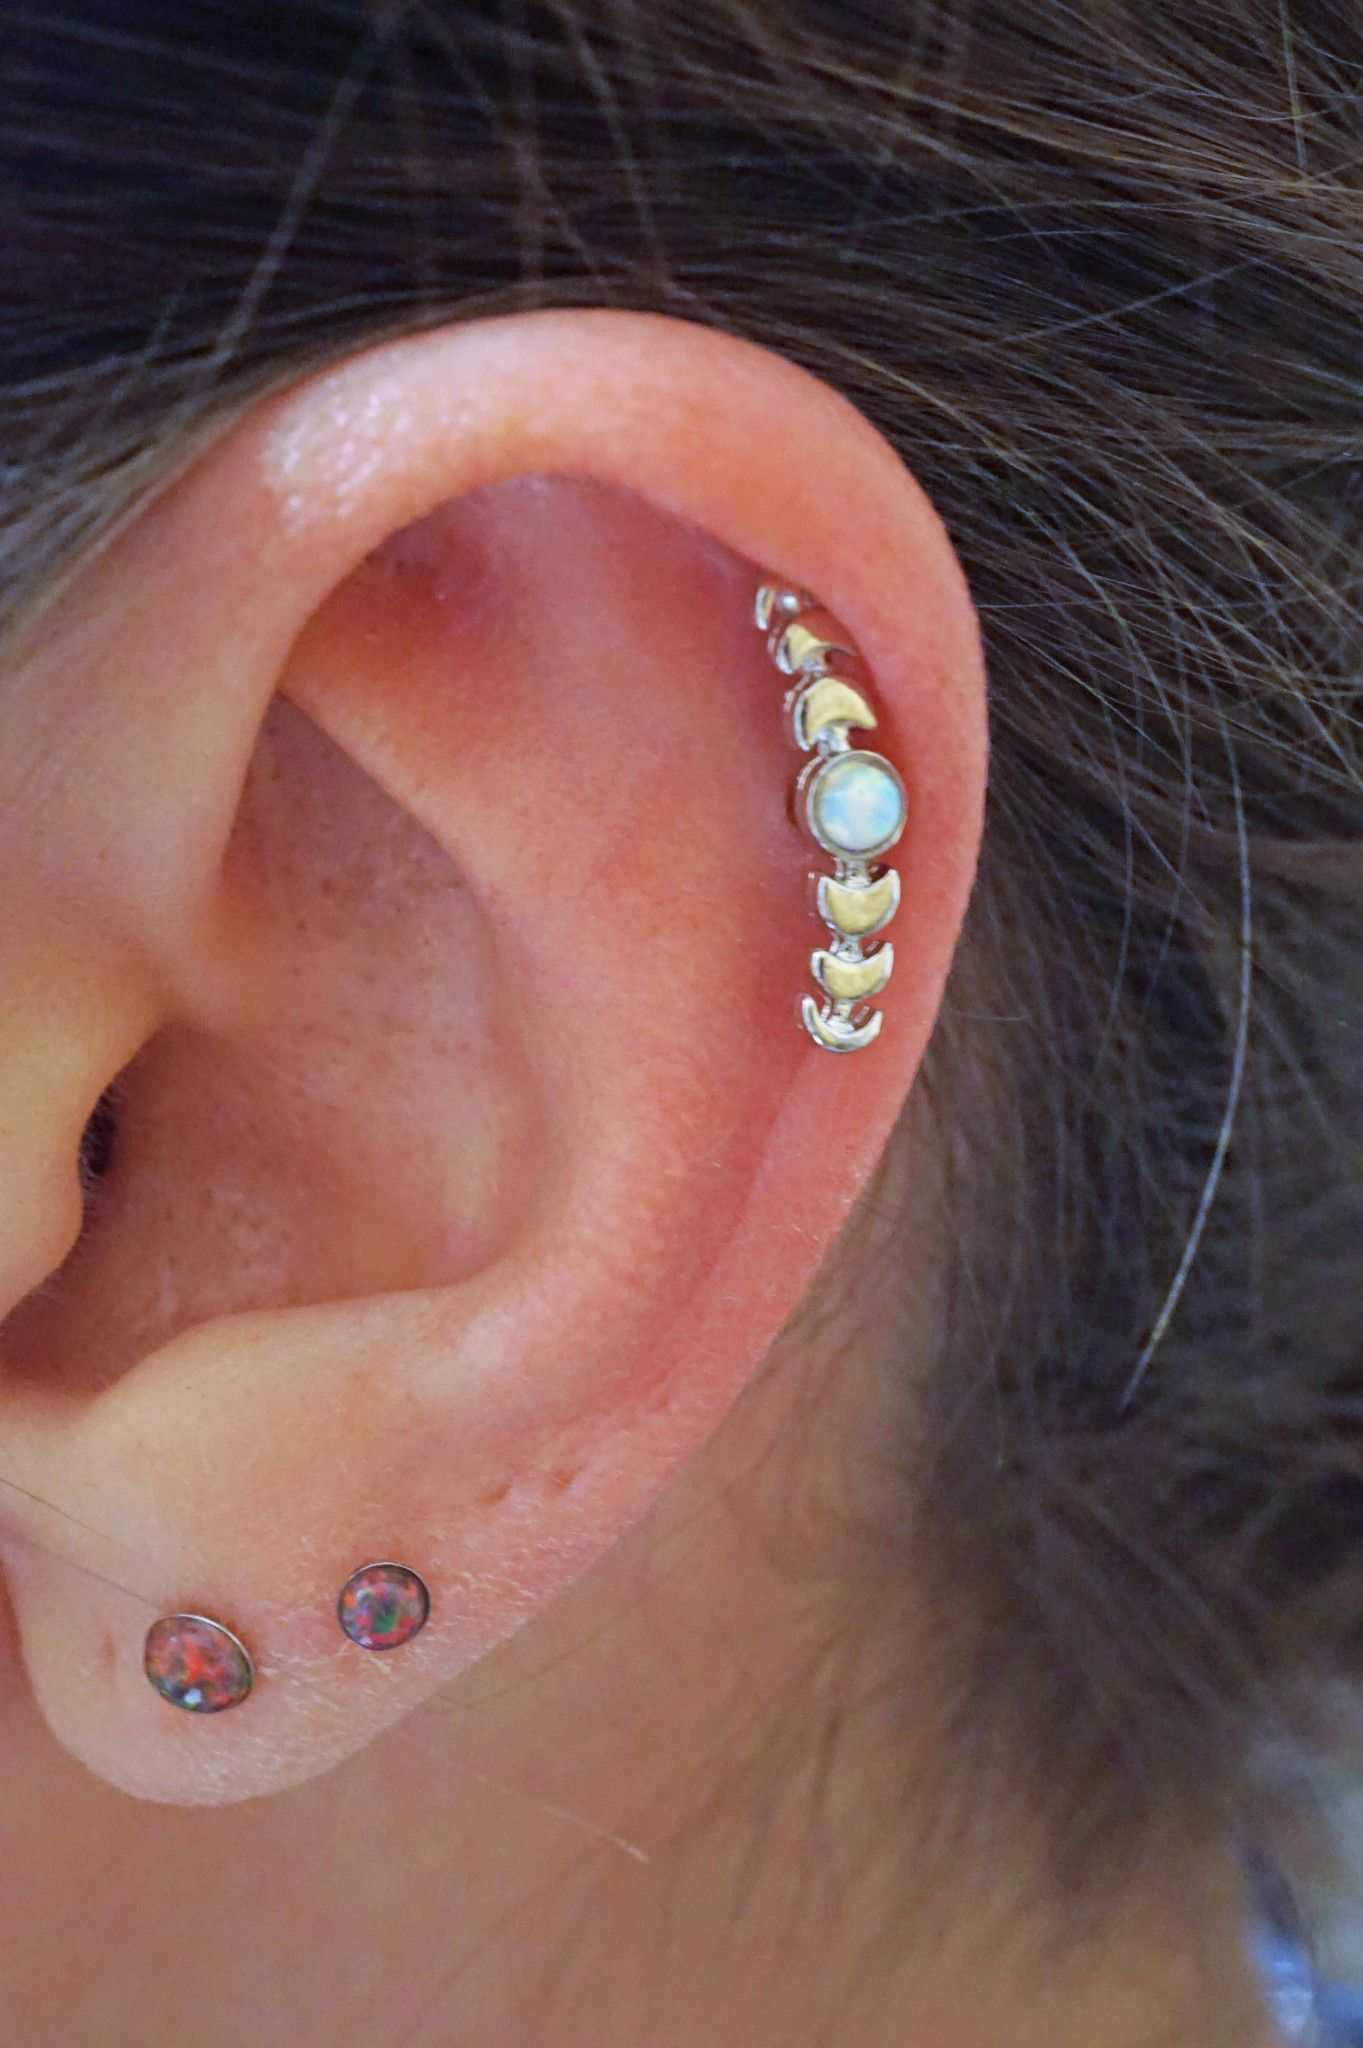 White Fire Opal Moon Stud Cartilage Earring, Tragus Or Helix Piercing 316l  Surgical Steel